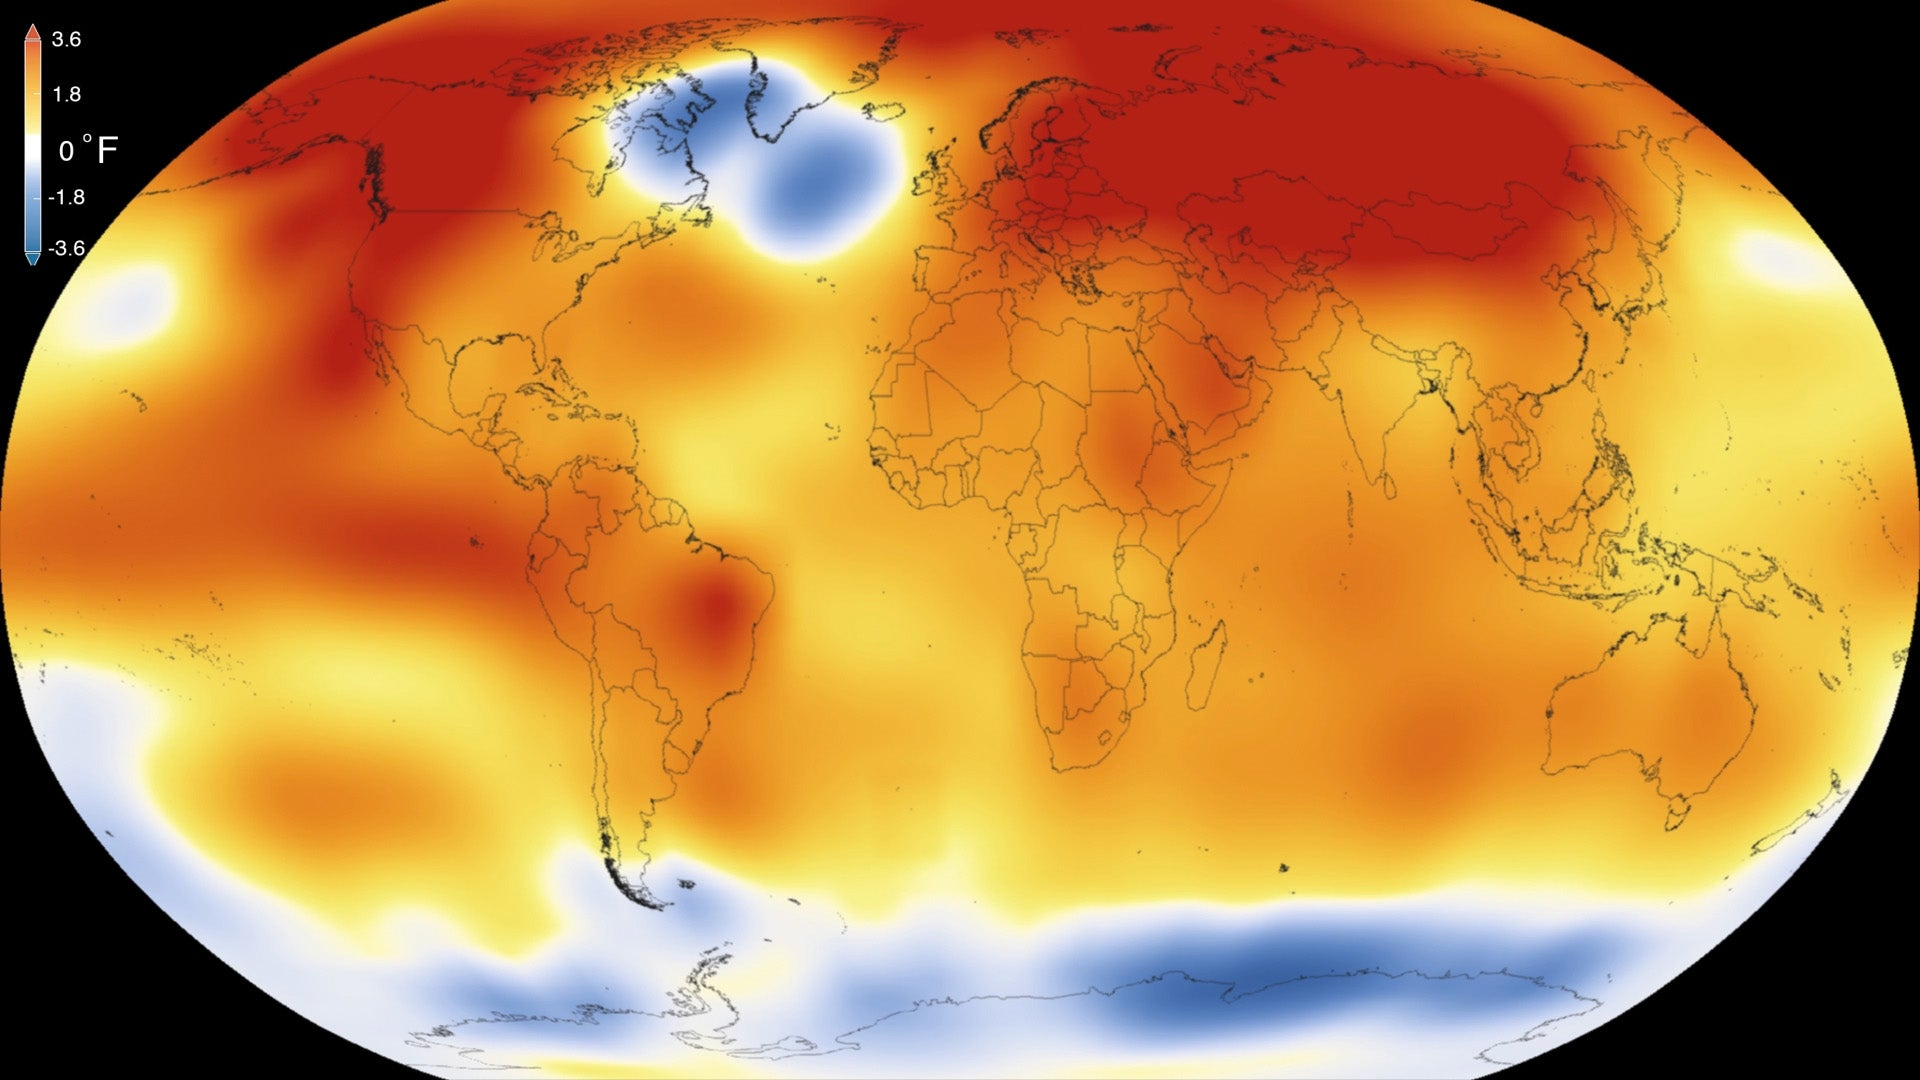 2015 Shattered All Temperature Records, And It Wasn't Just ElNiño